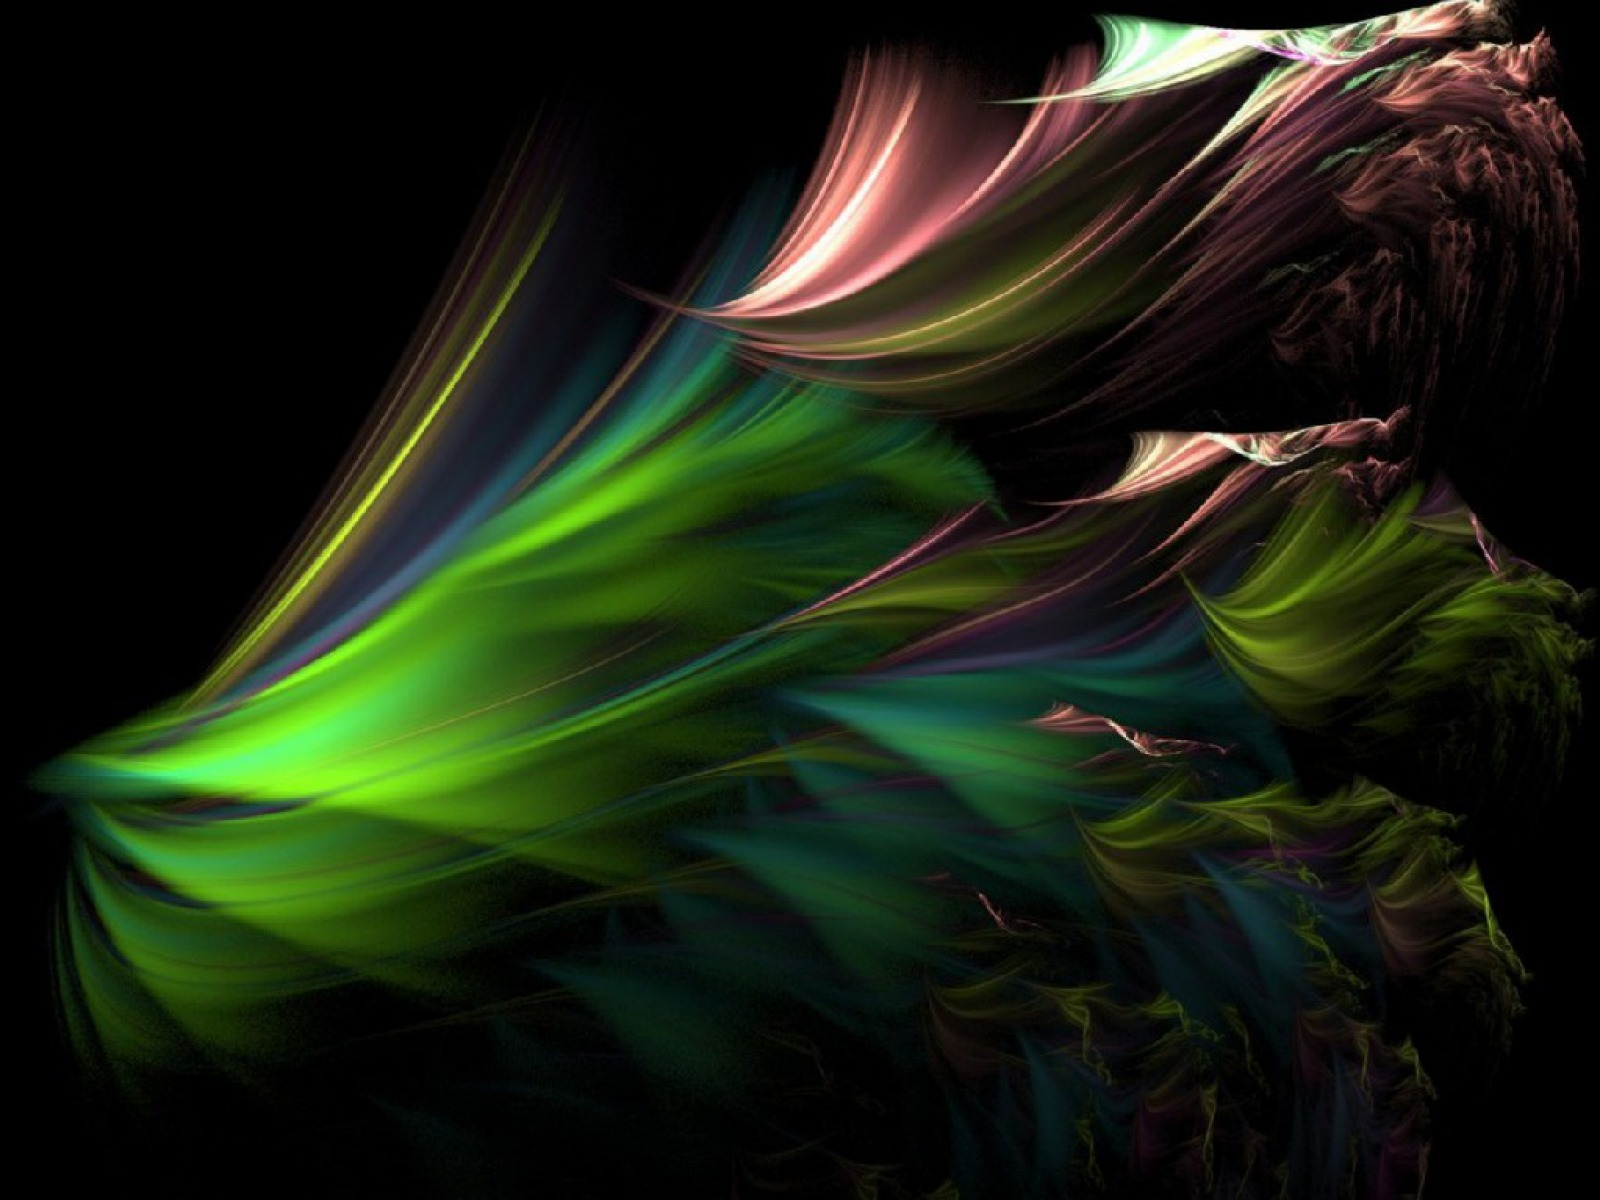 Fractal Peacock Feathers wallpapers Fractal Peacock Feathers stock 1600x1200